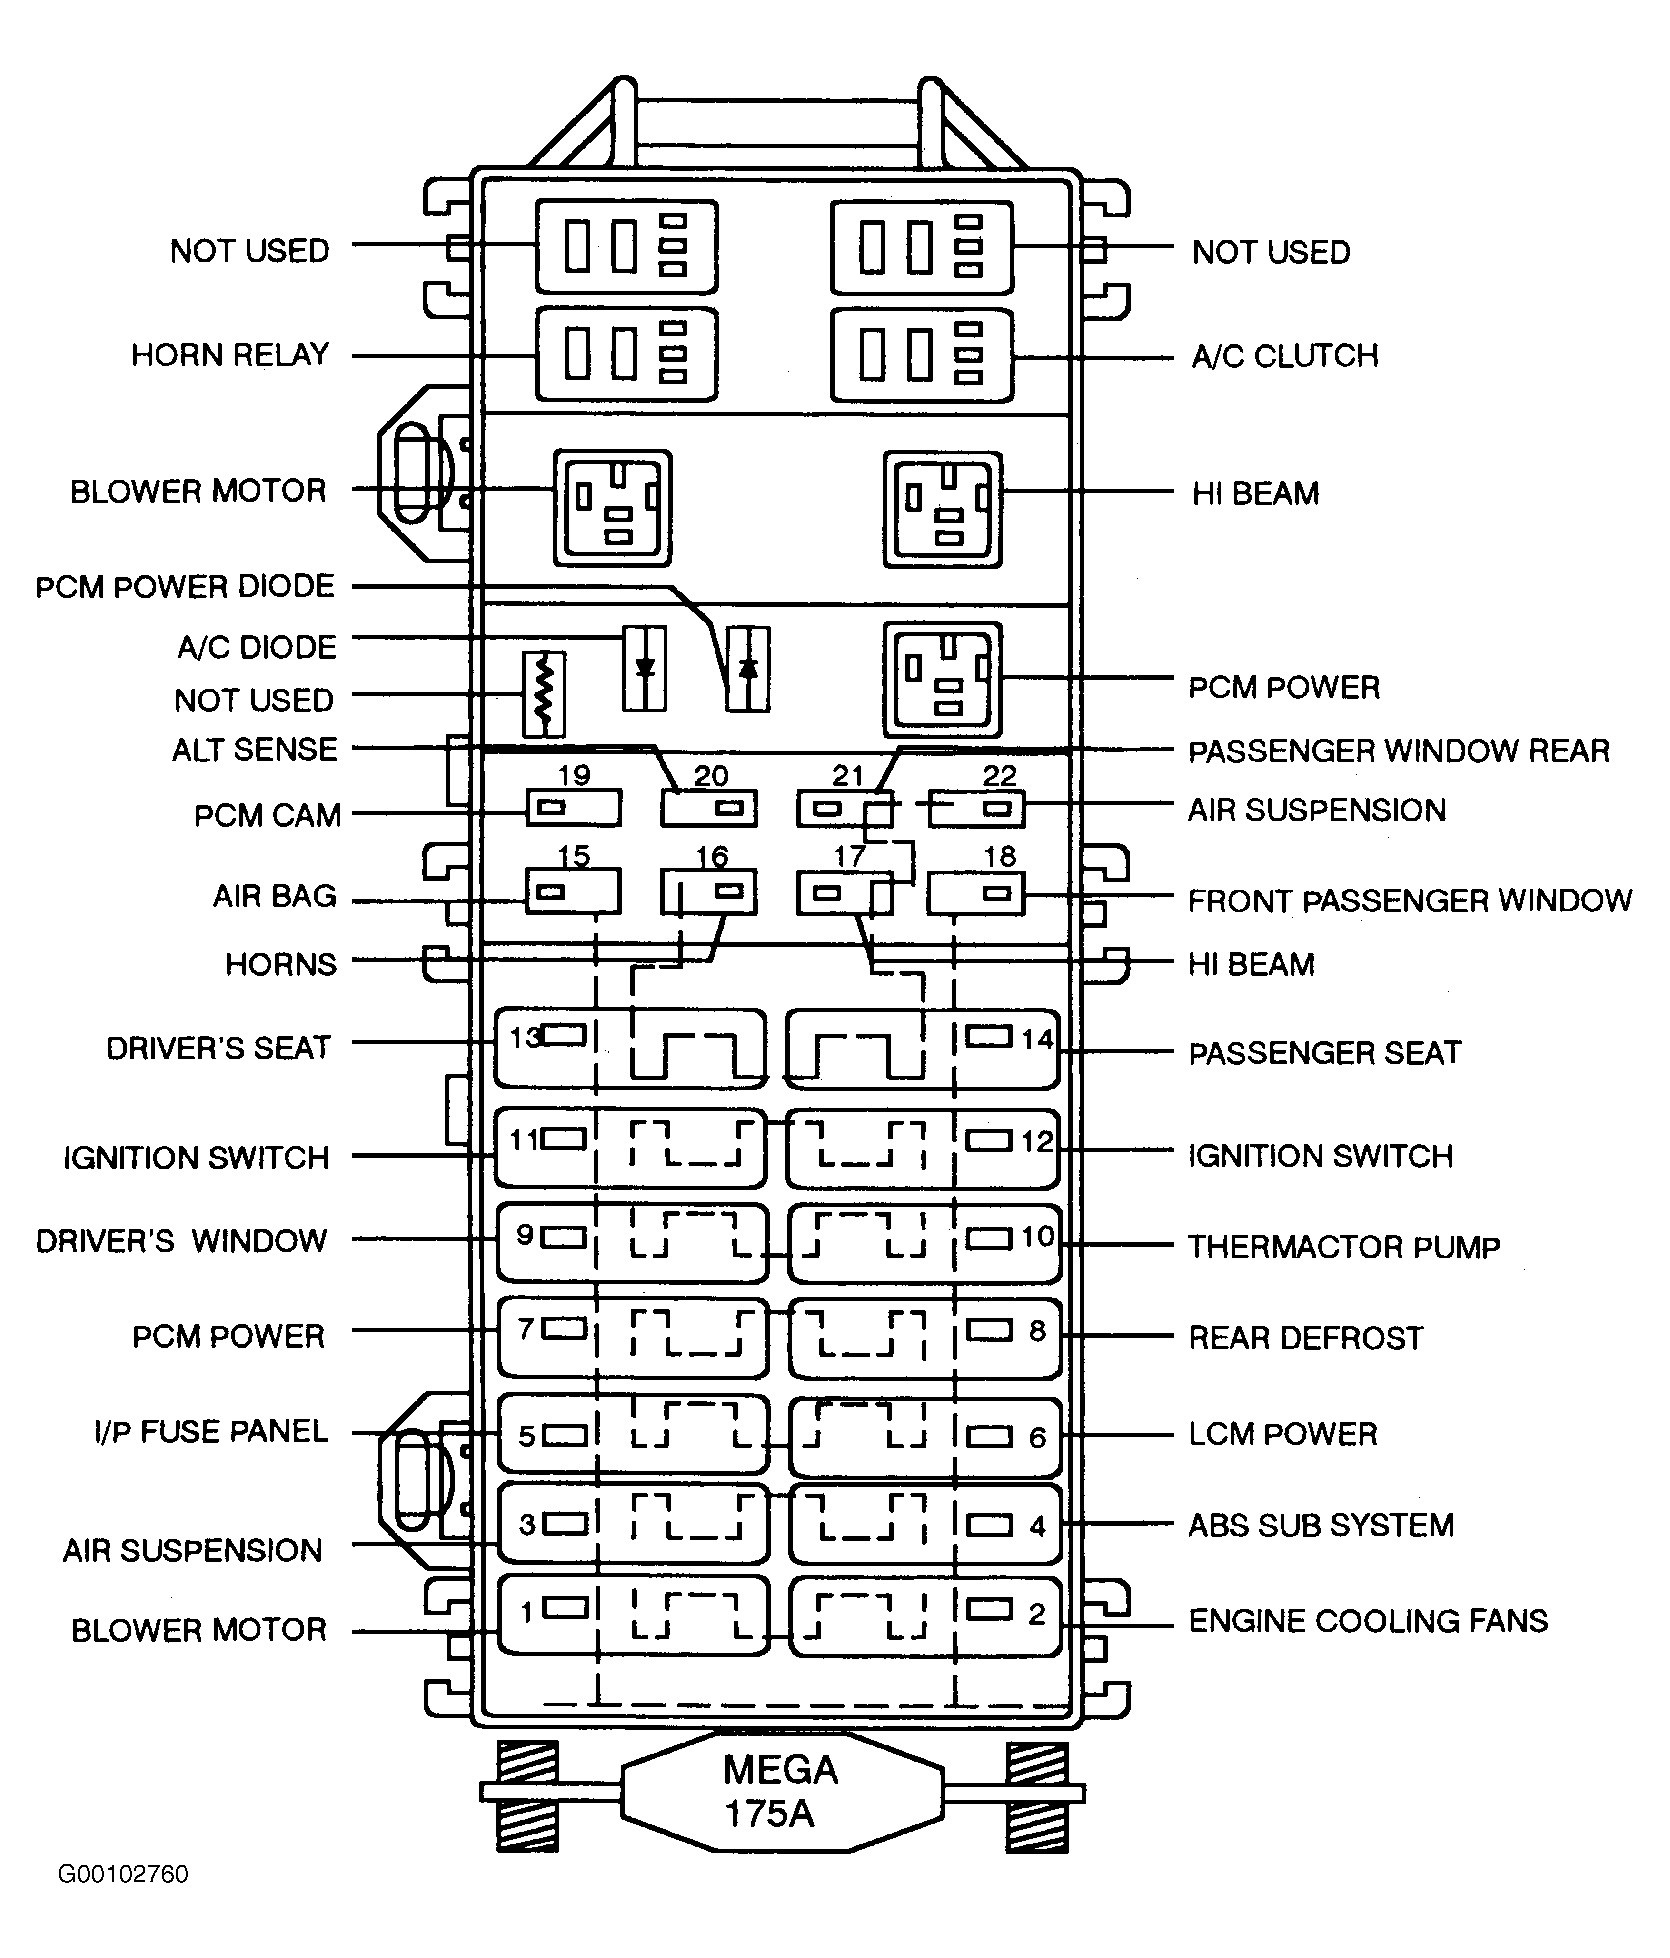 fuse box diagram 1998 camaro